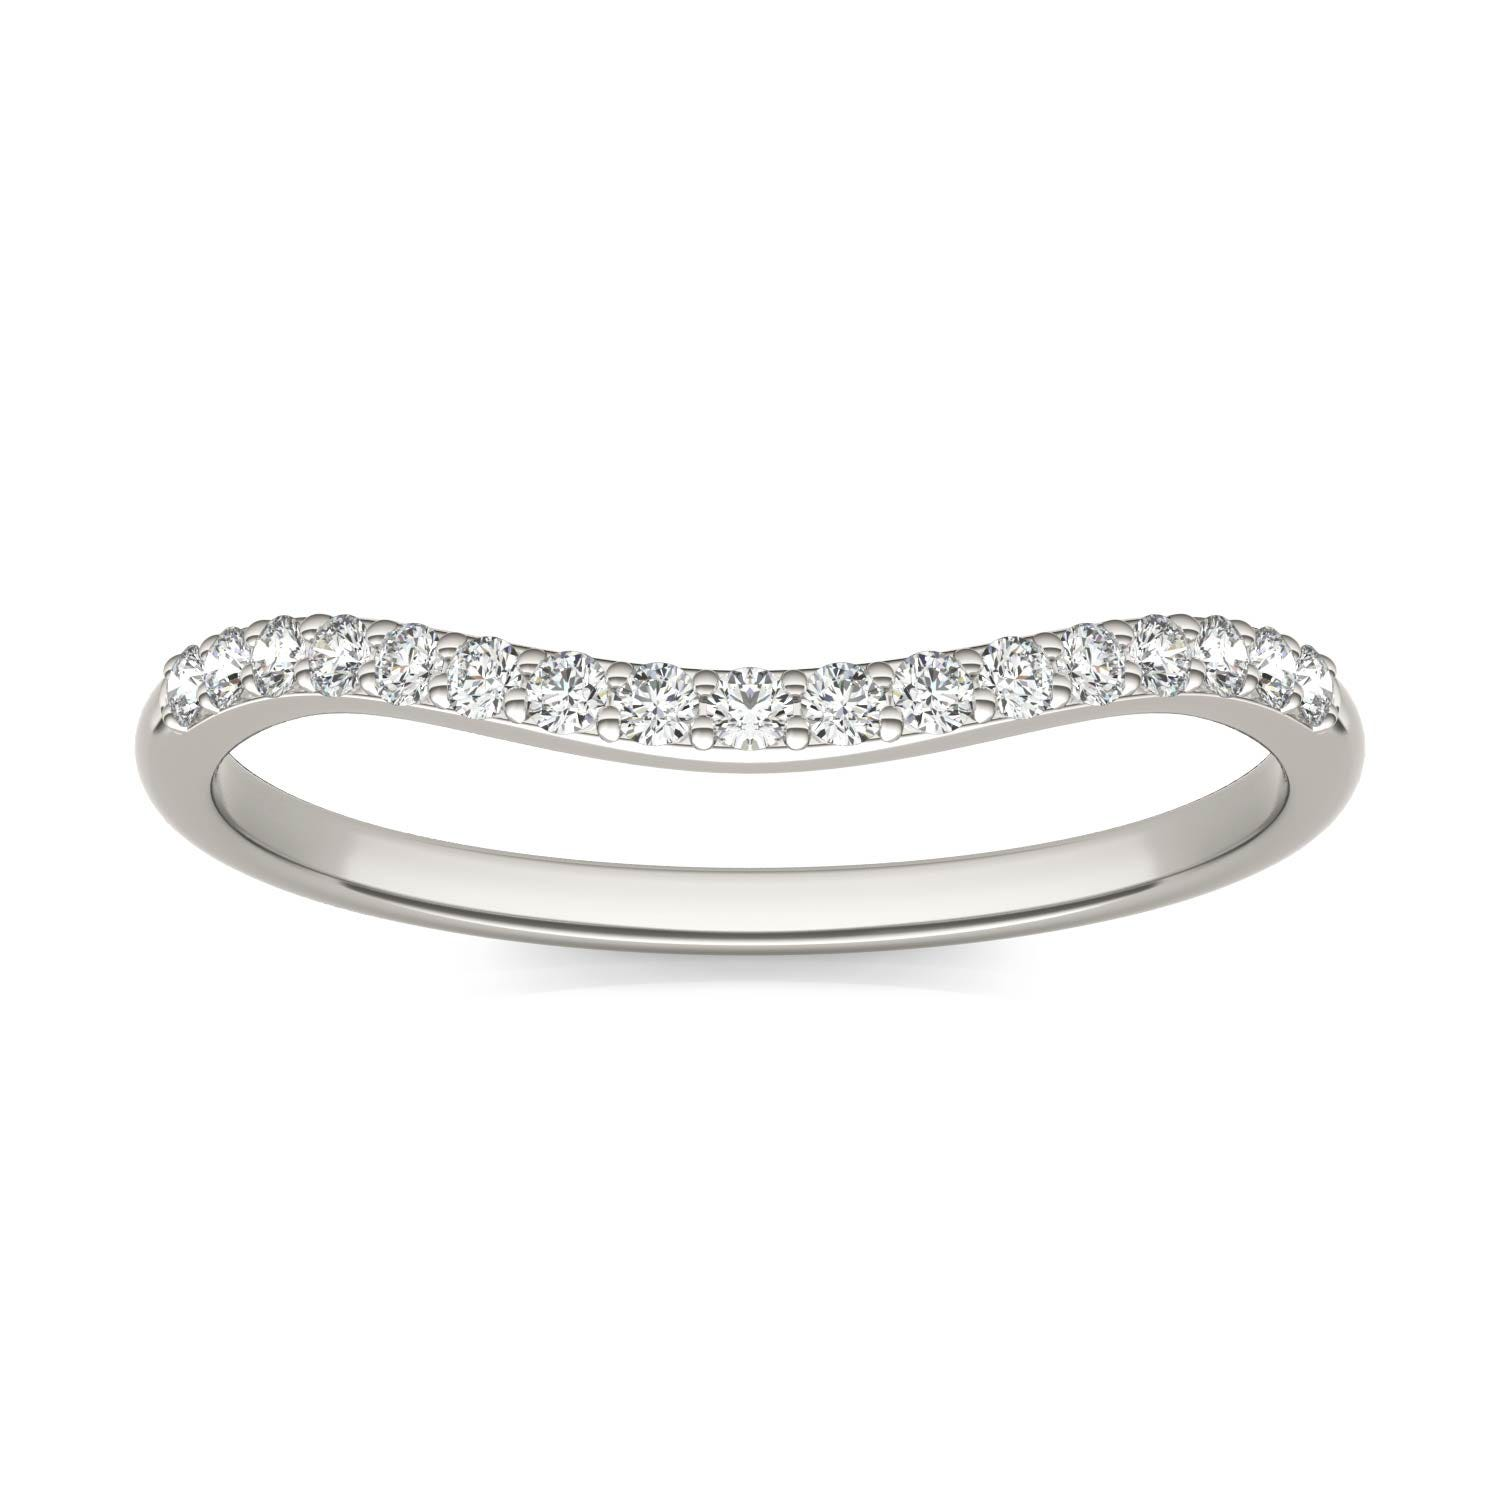 Signature 8mm Round Matching Band Wedding Ring in 18K White Gold, Size: 7.5, 1/6 CTW Charles & Colvard